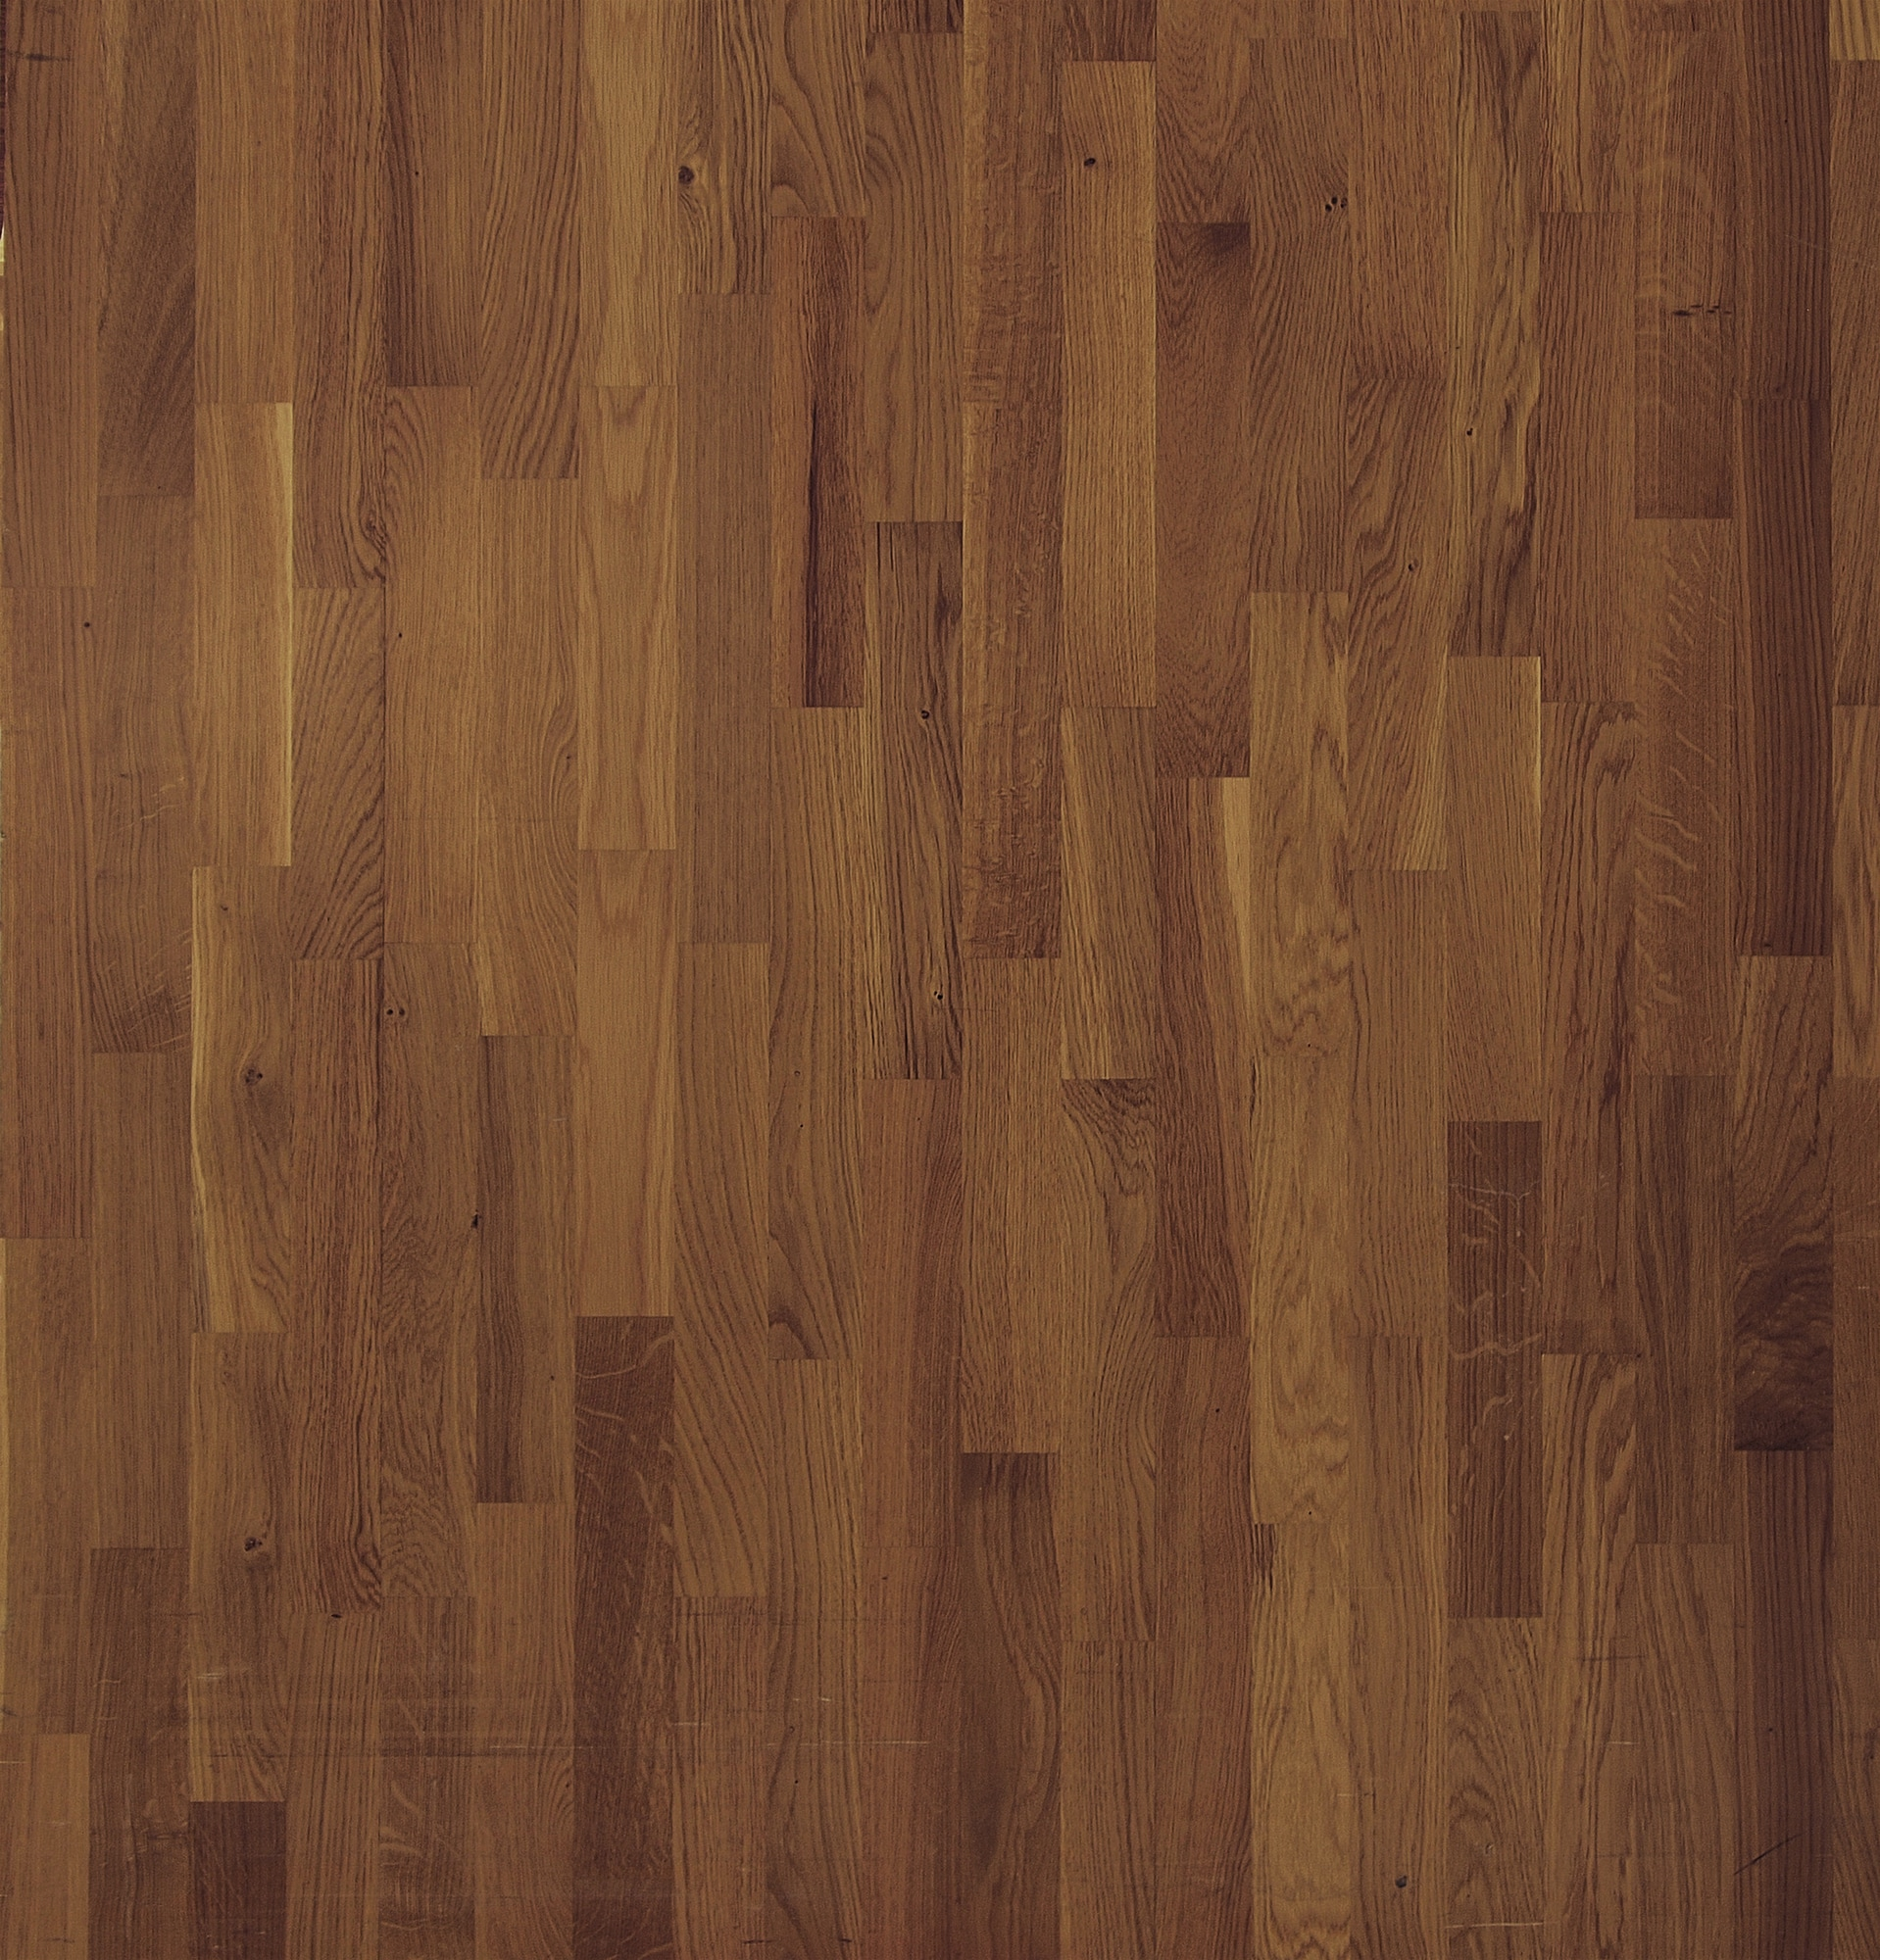 Hardwood_floors.jpg